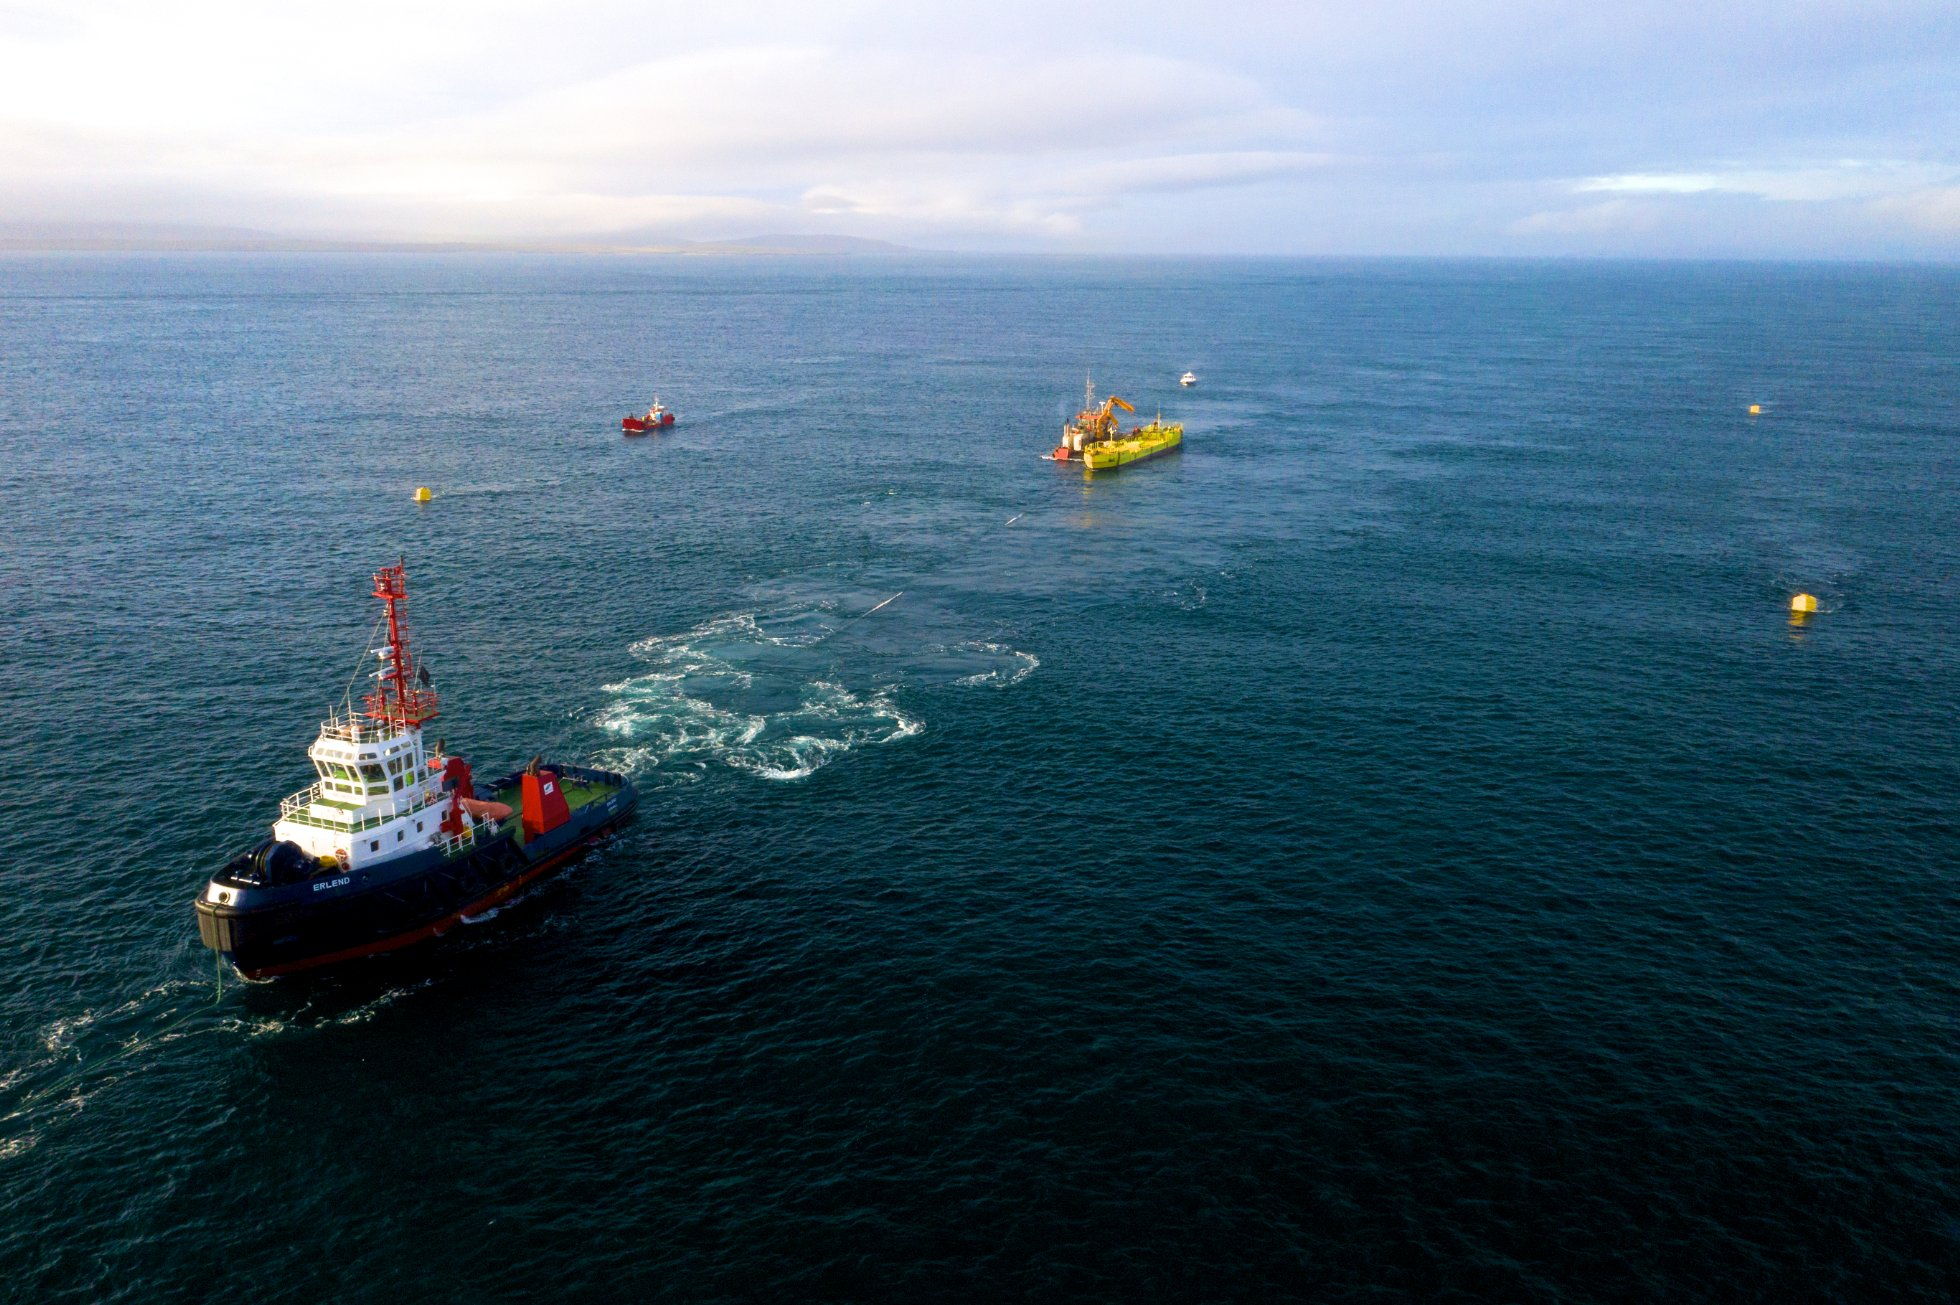 The Fall of Warness is EMEC's main tidal testing site in Orkney - image © Colin Keldie, courtesy Ocean_2G